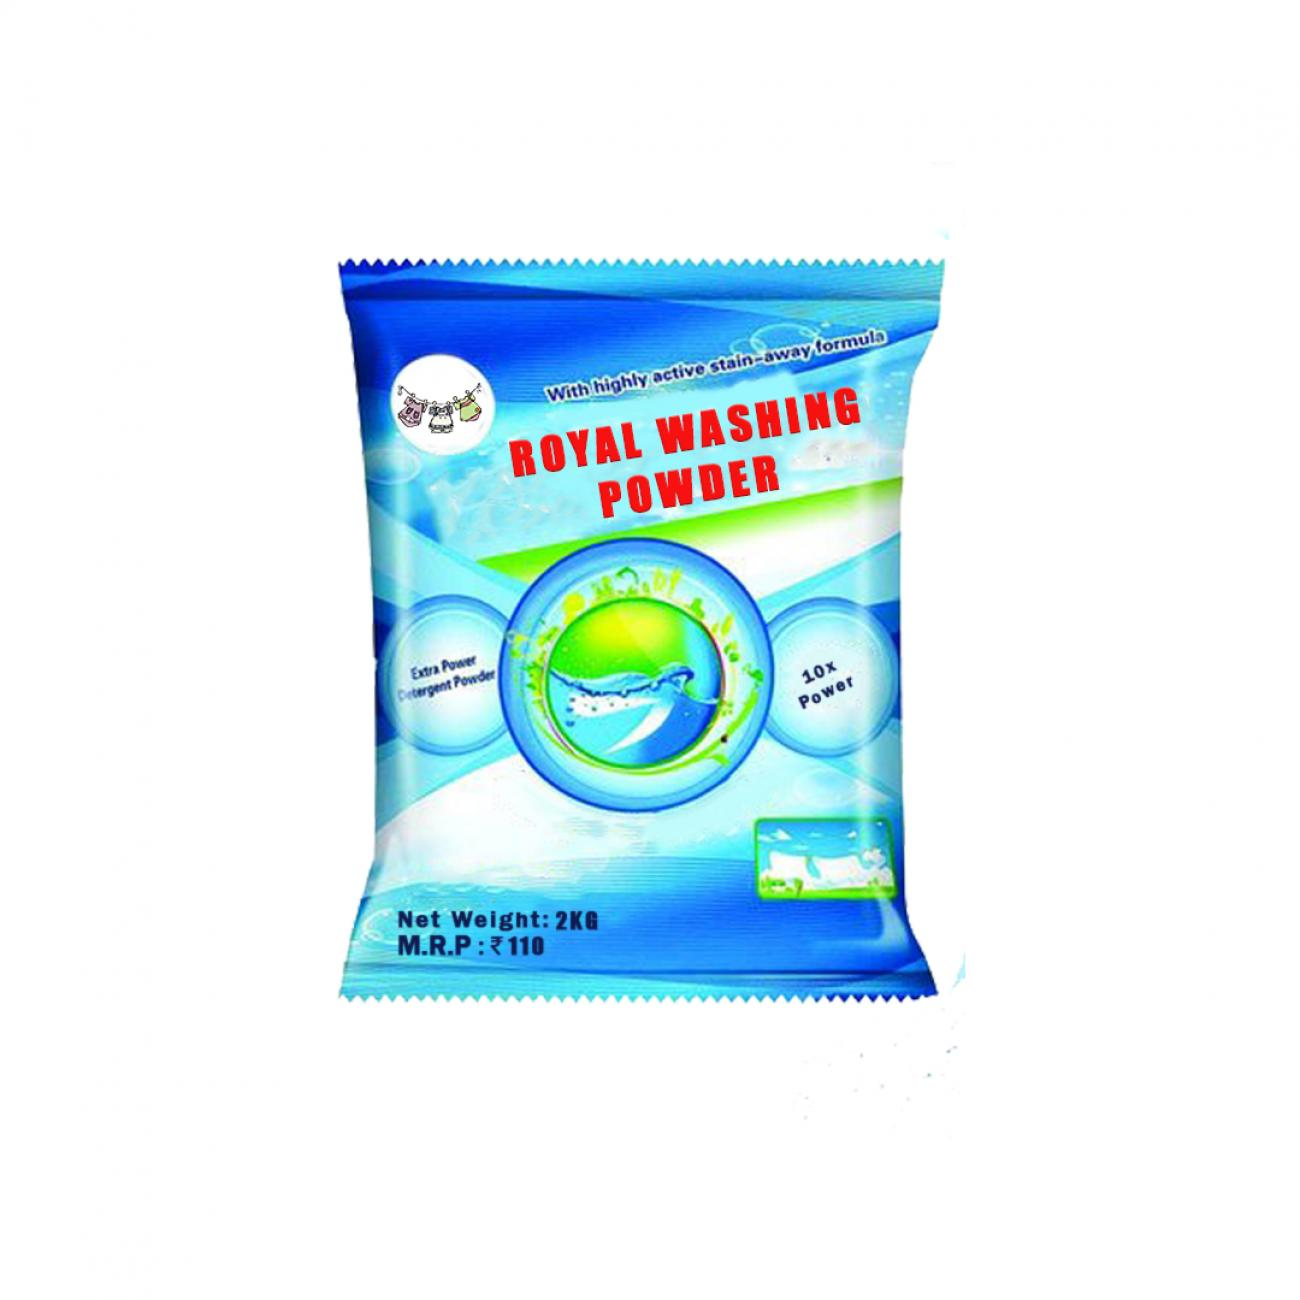 Washing powder 2Kg